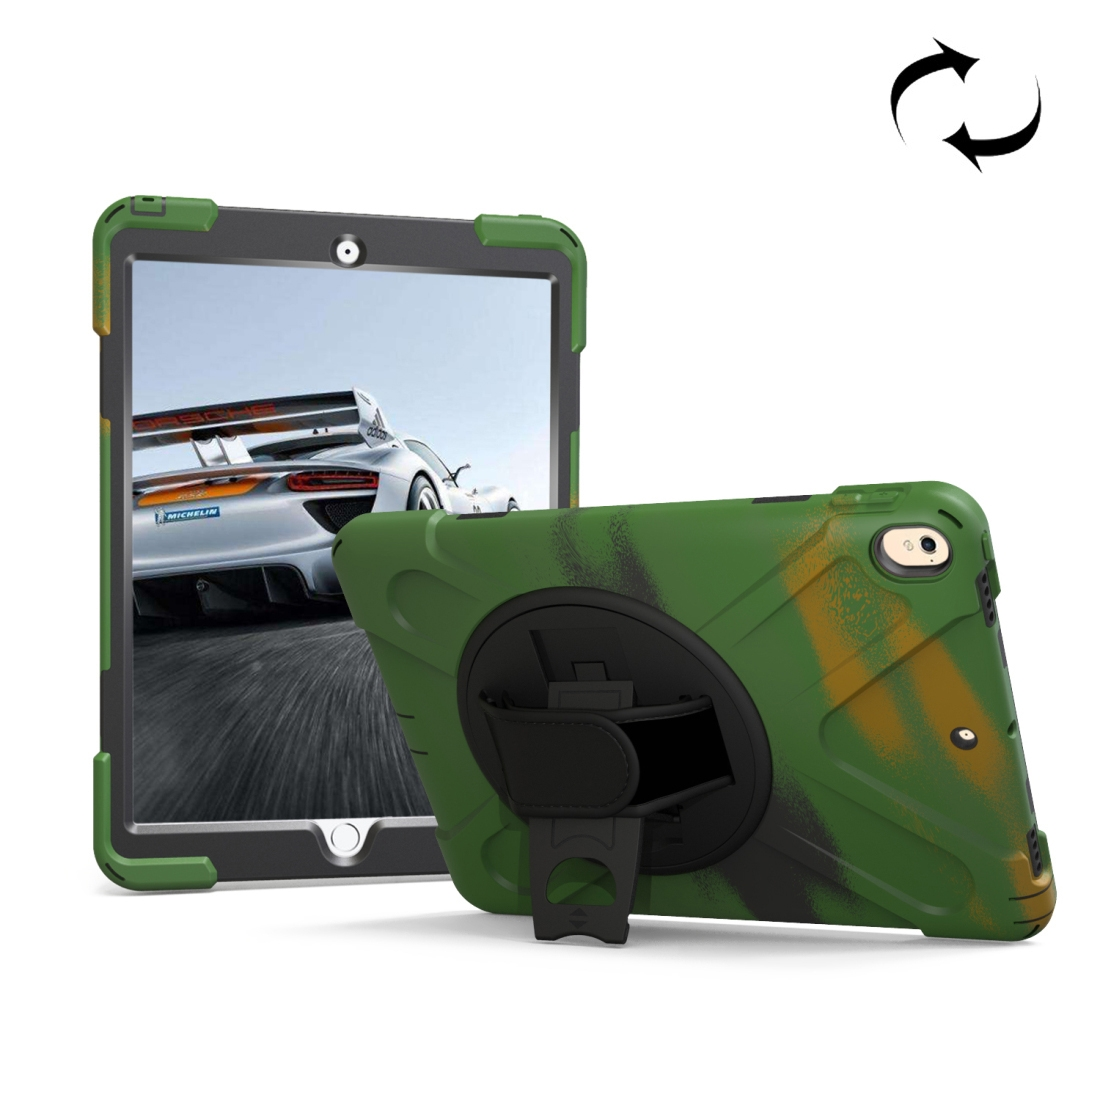 iPad Air 3 Case (10.5 Inch) Rotating Protective Case with Hand-strap (Camouflage Green)